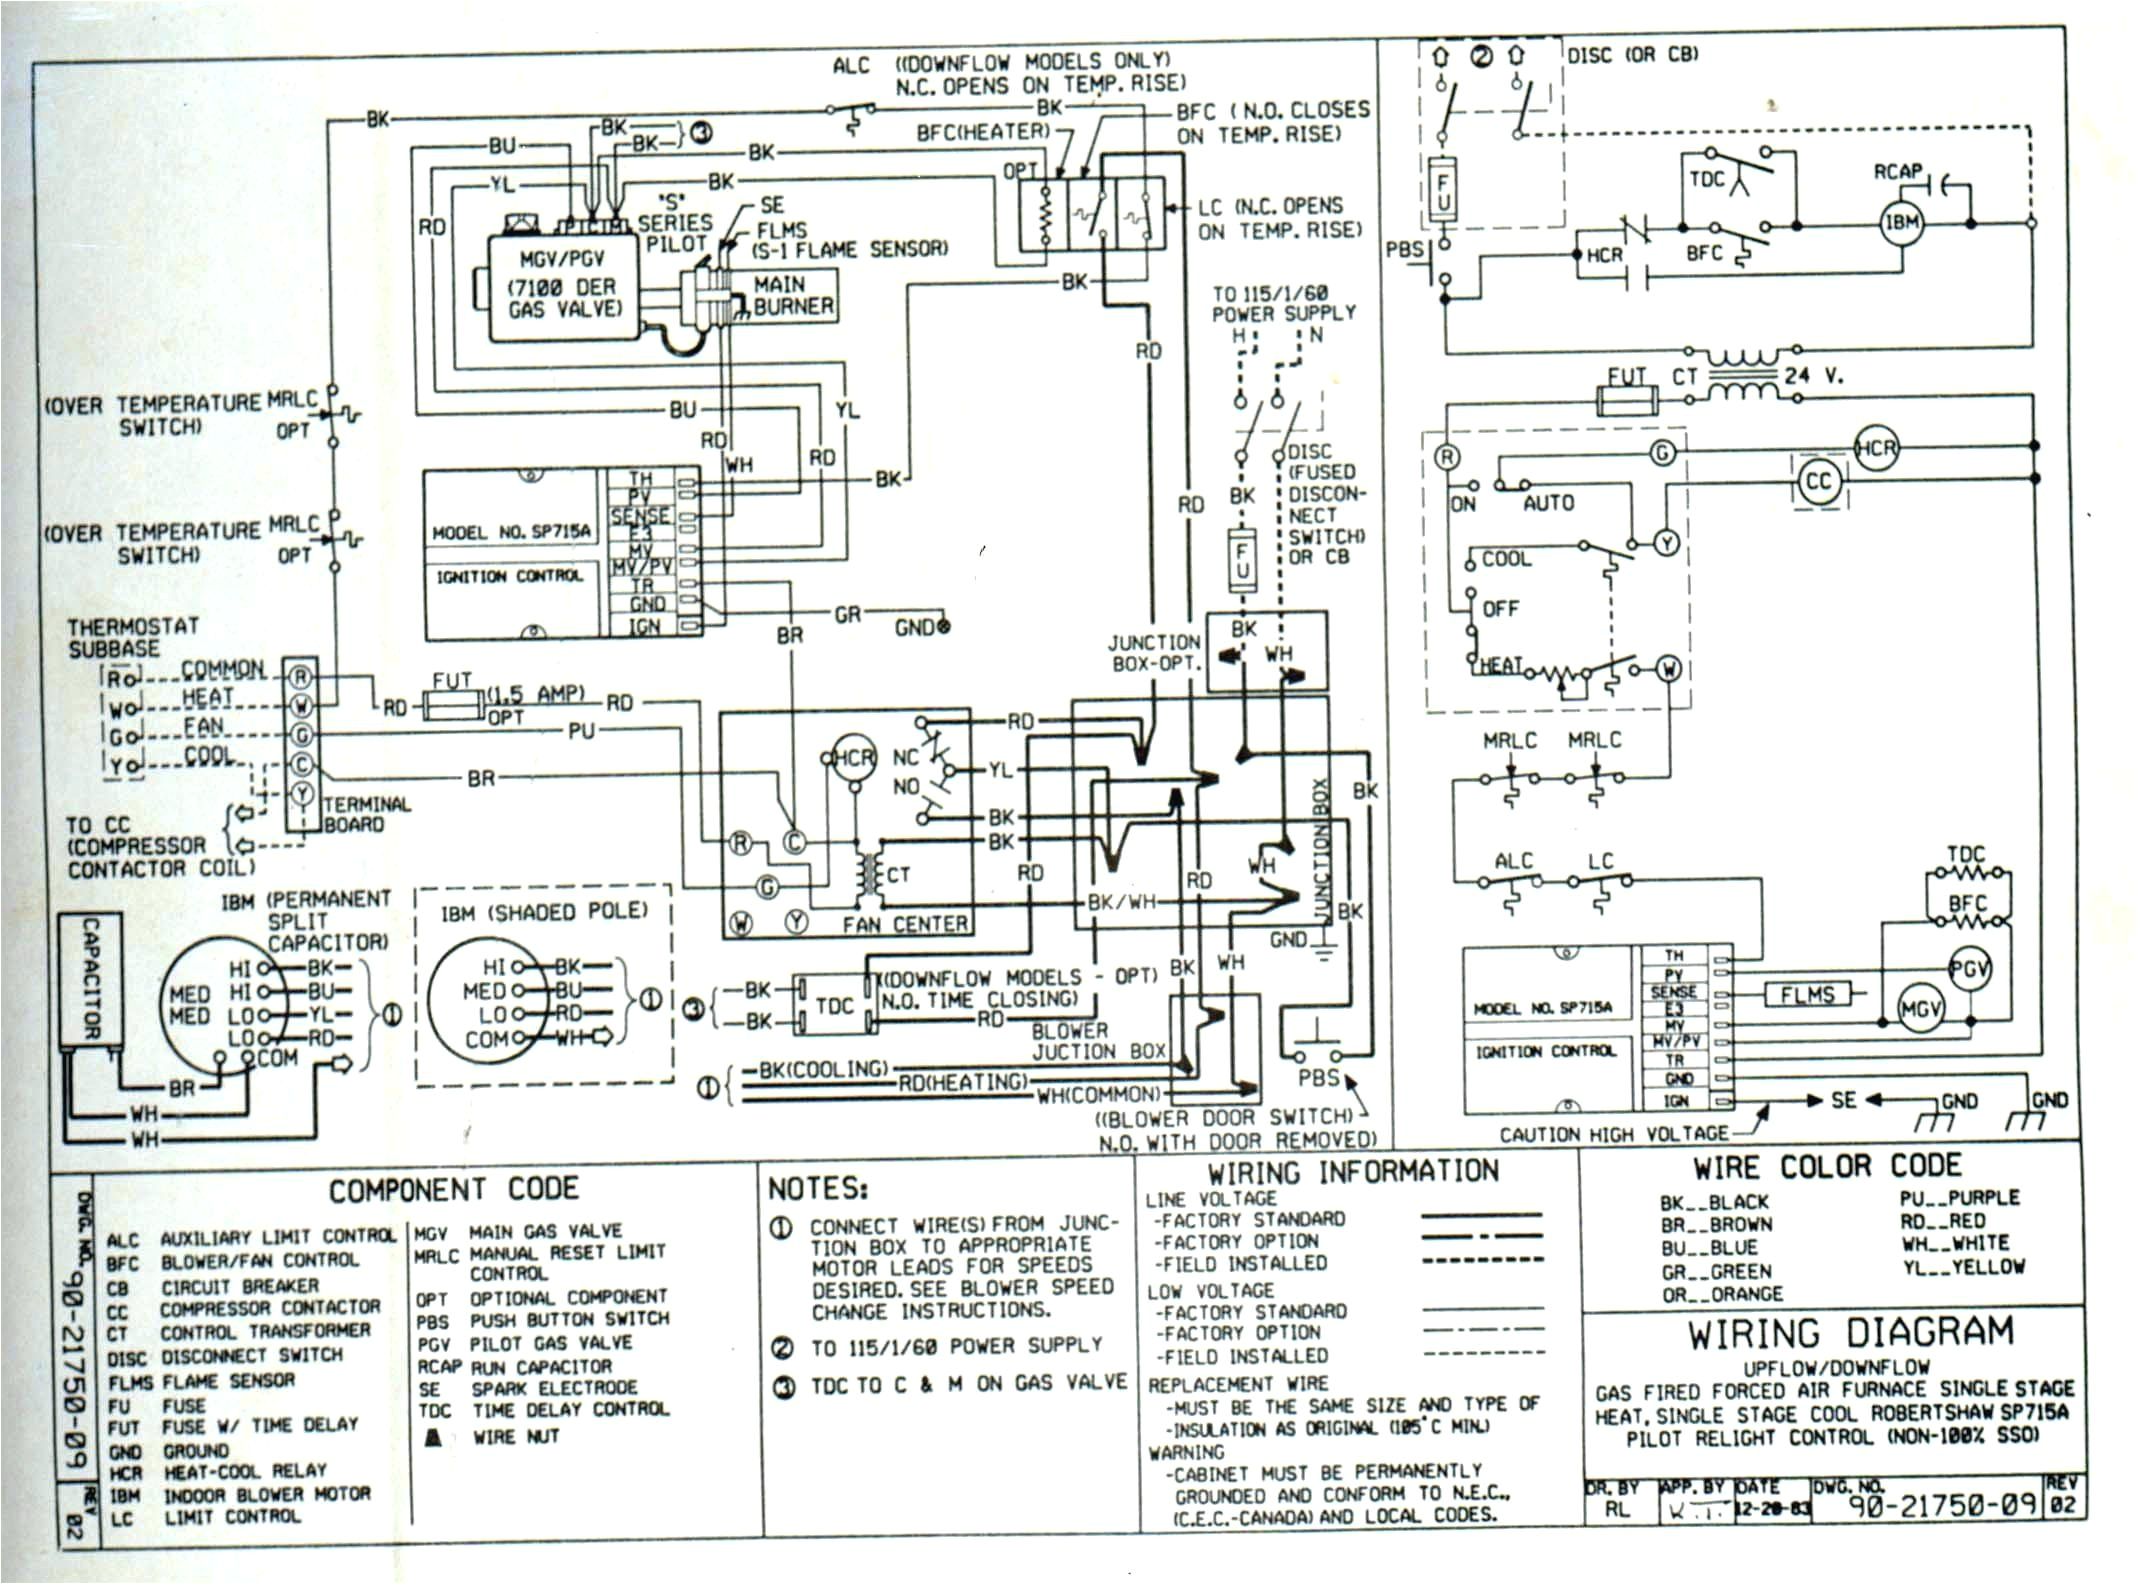 payne package unit wiring diagram payne package unit wiring diagram new trane air handler wiring diagram quot 6f jpg